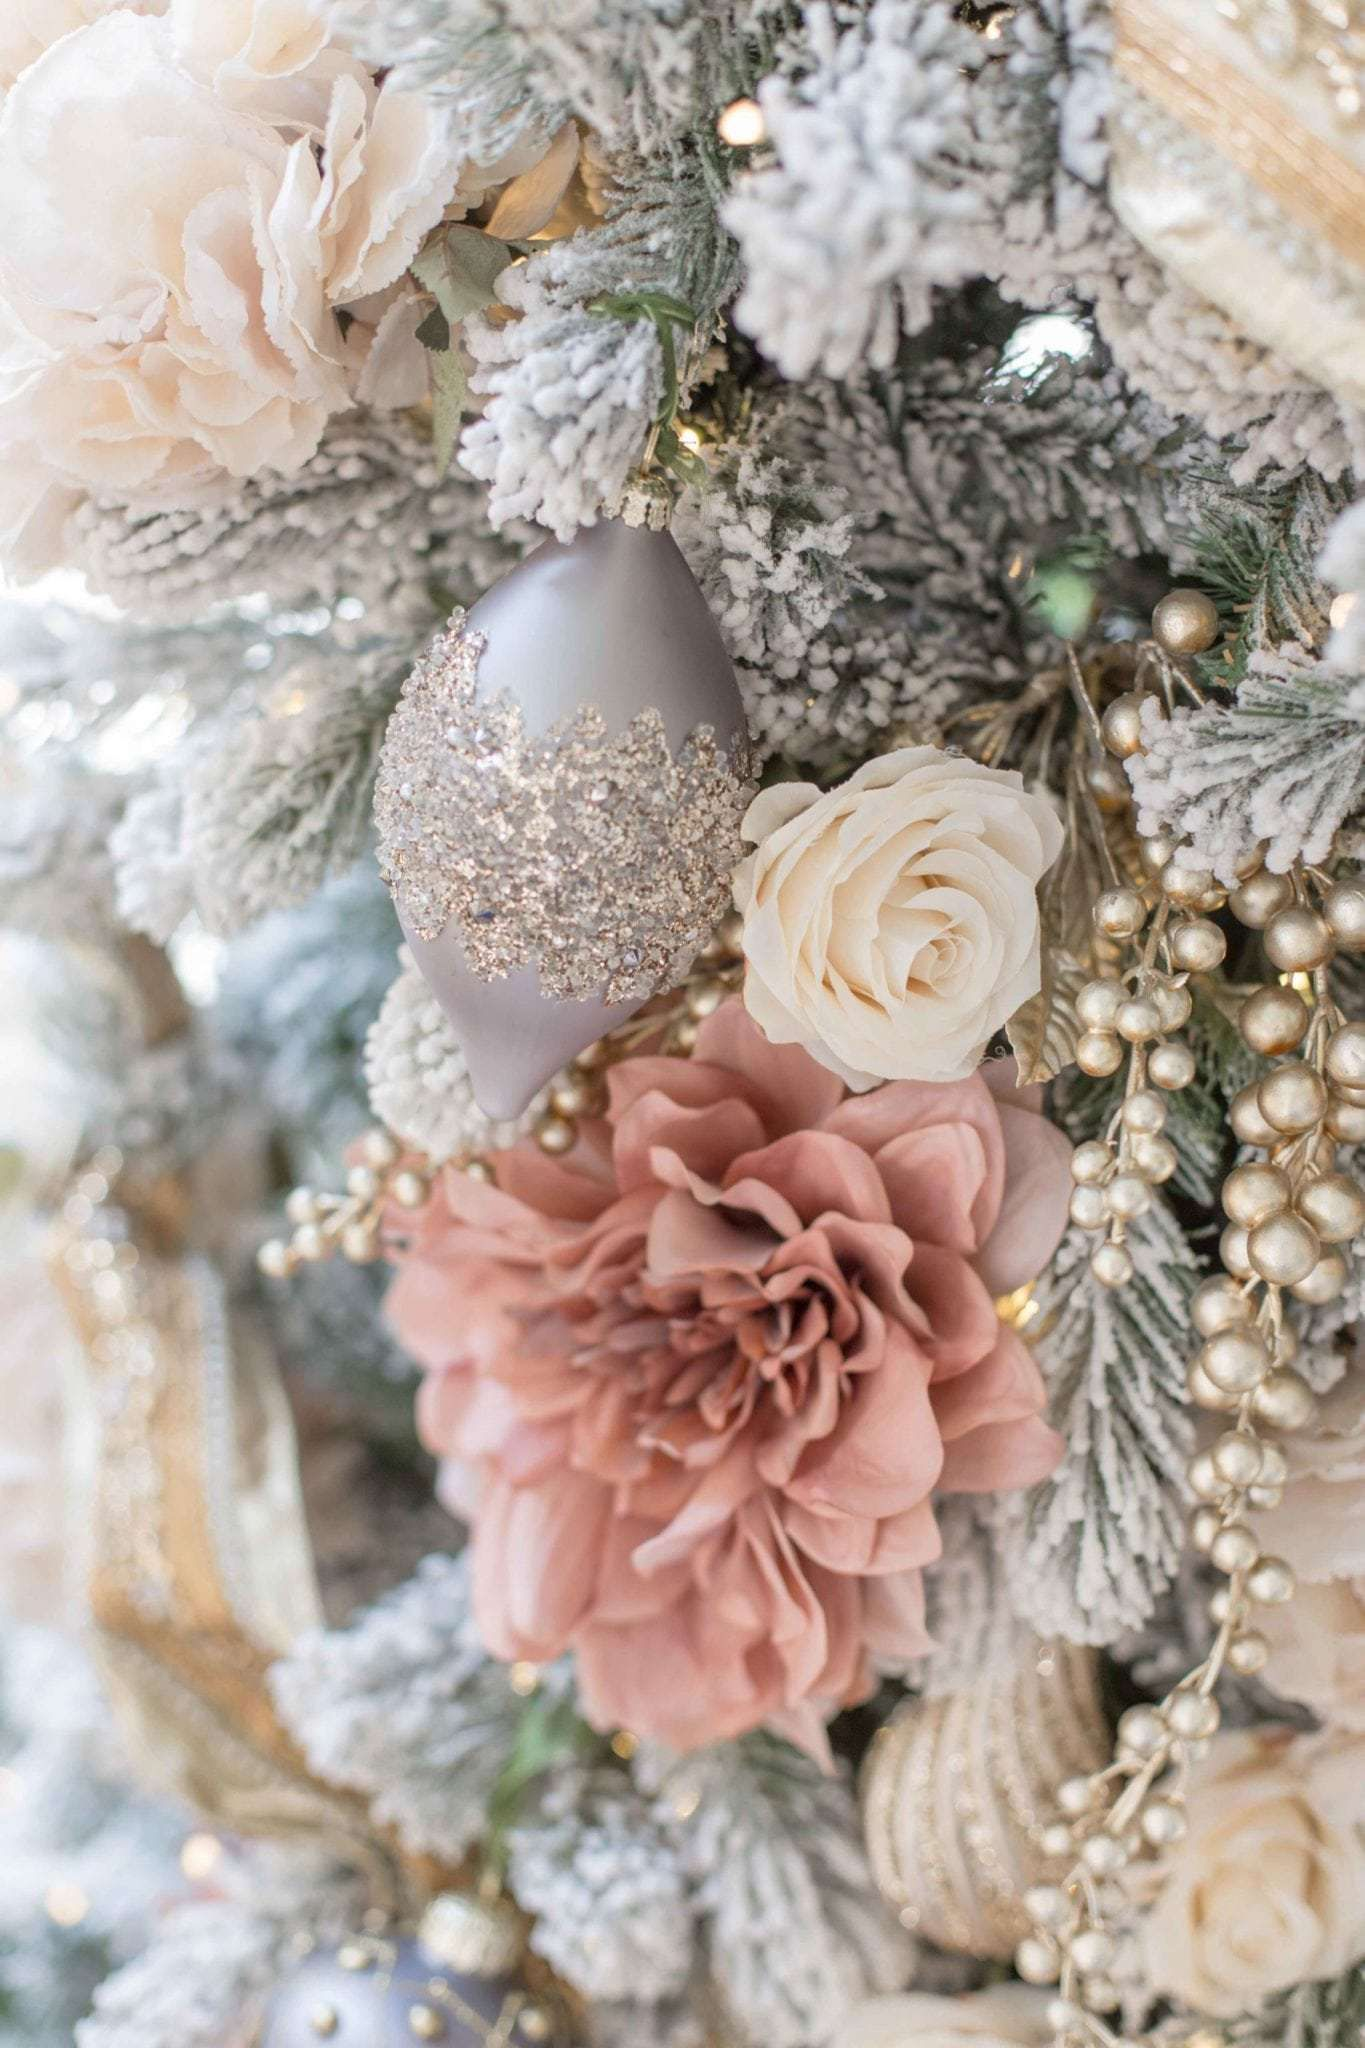 Get Beautiful Christmas Tree Ideas for Another great Christmas